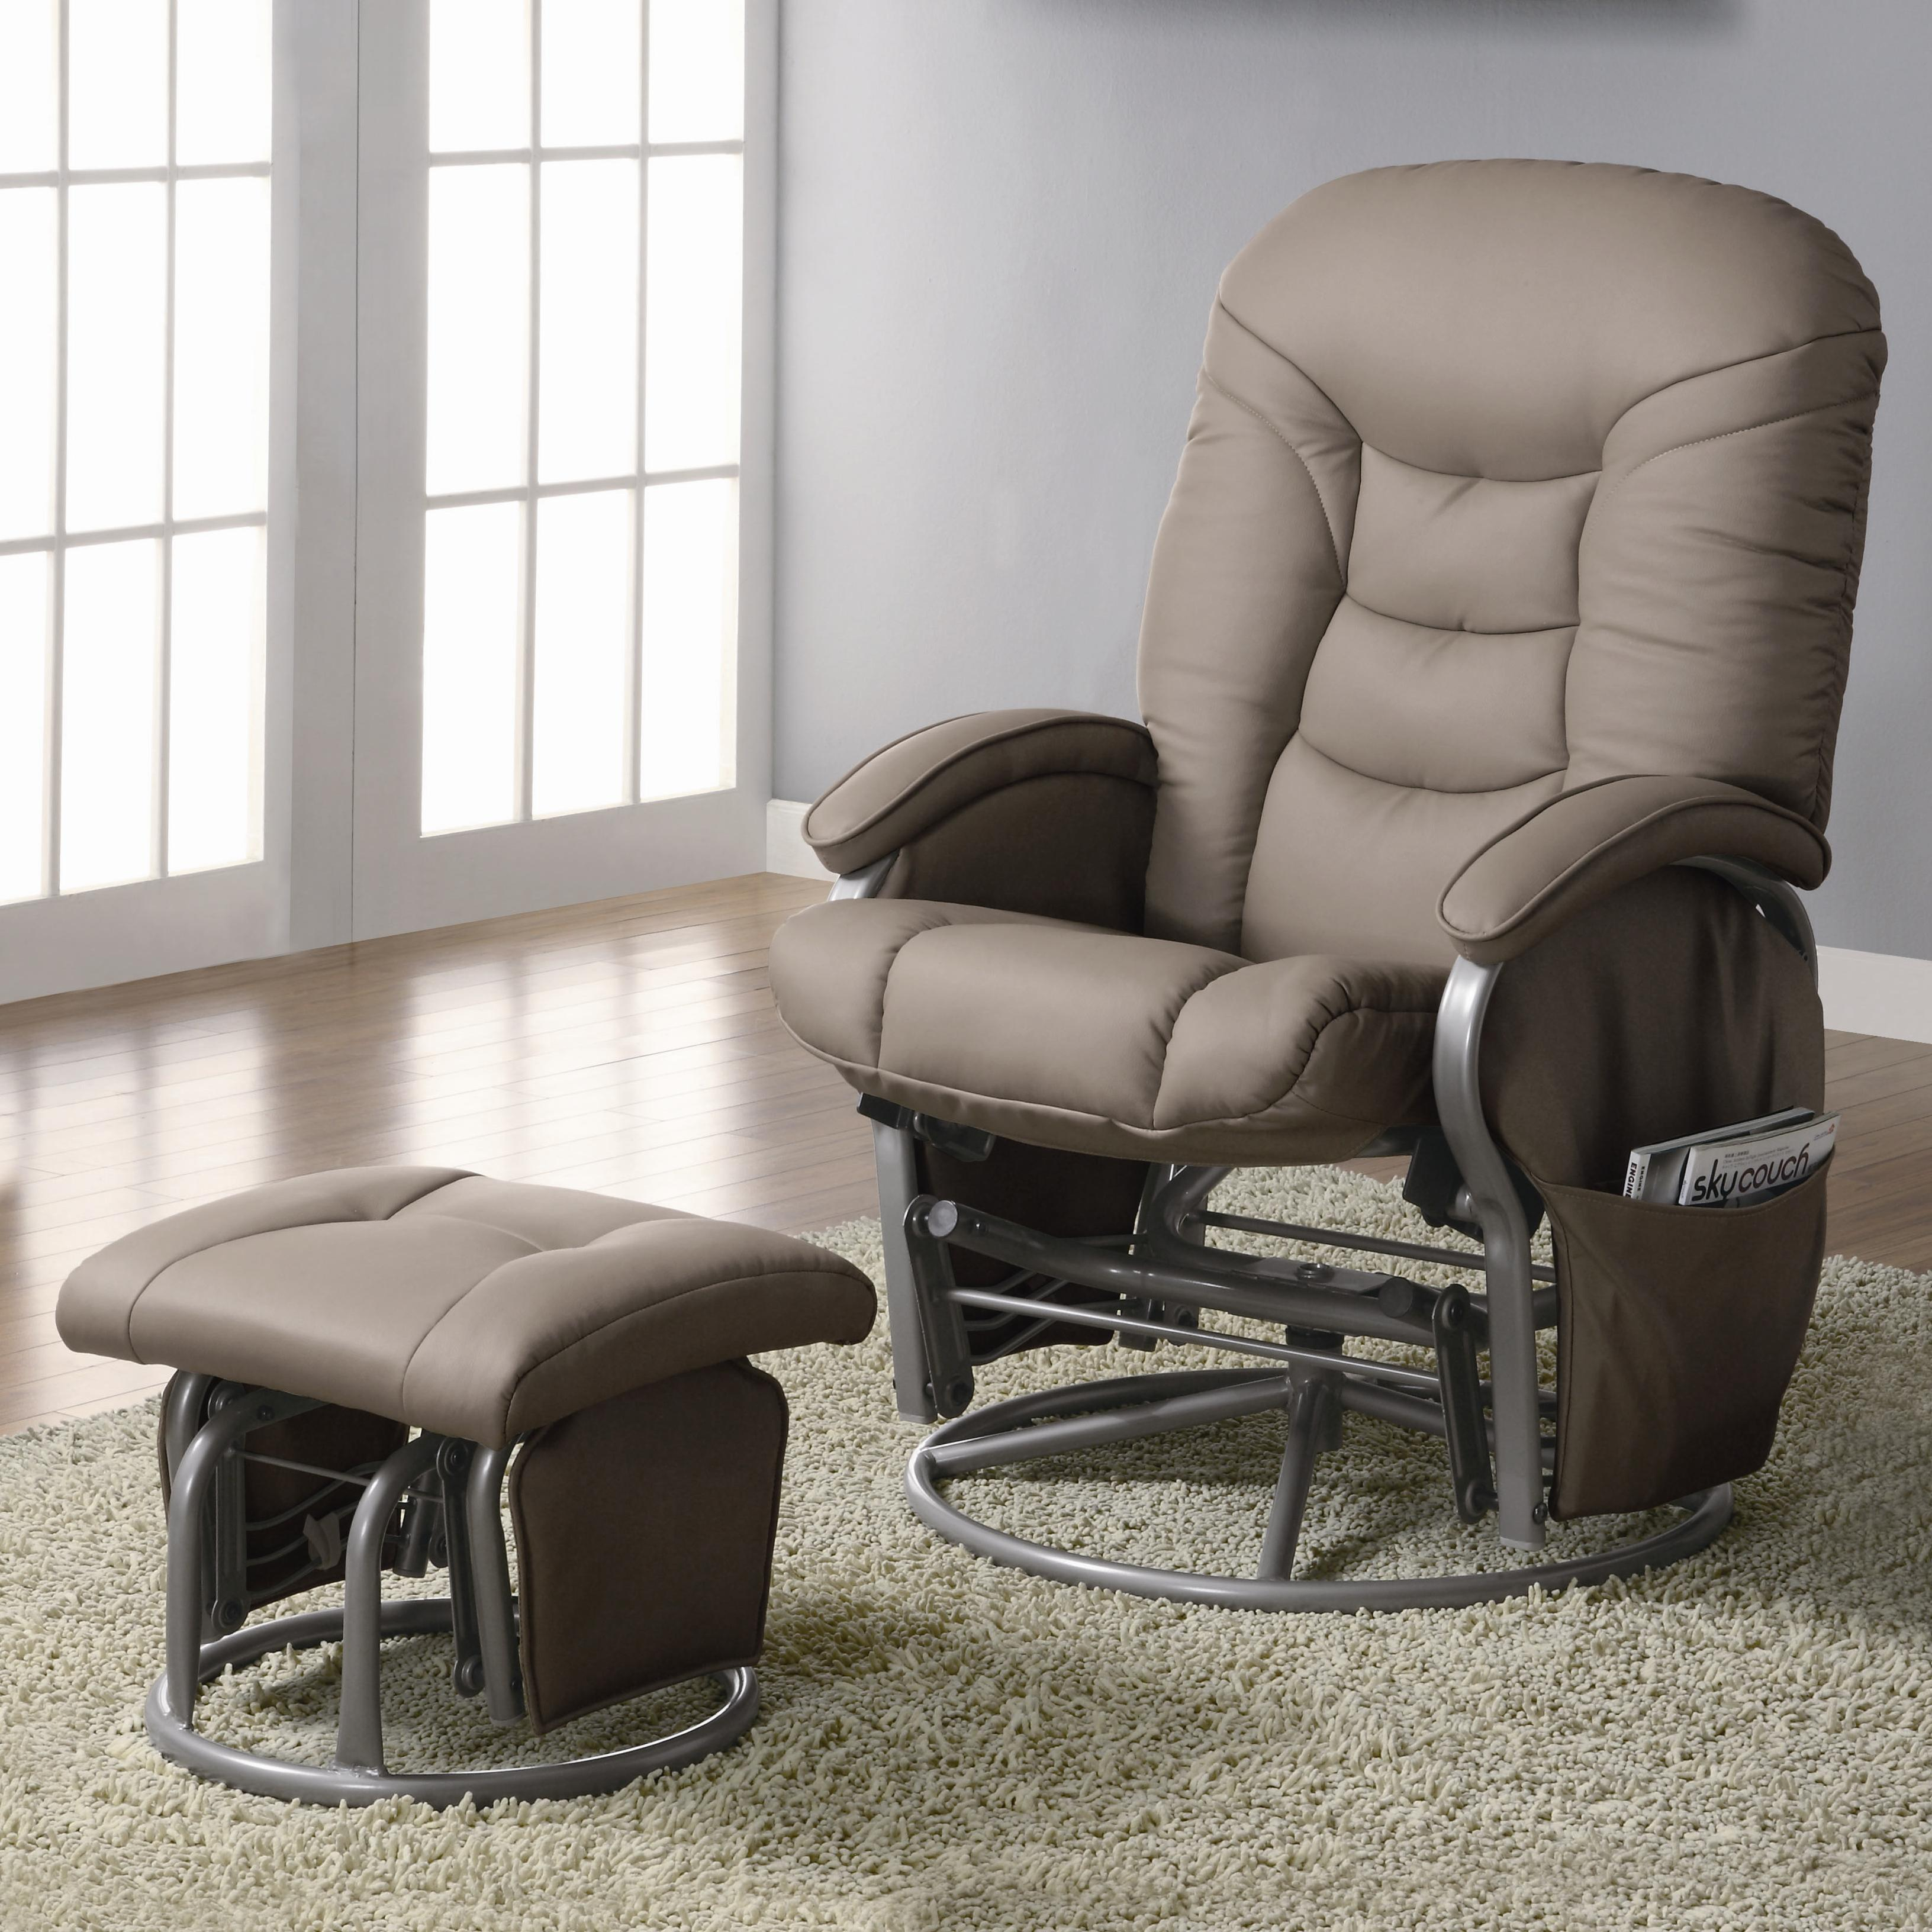 Recliners with Ottomans Glider Recliner with Ottoman by Coaster at Northeast Factory Direct